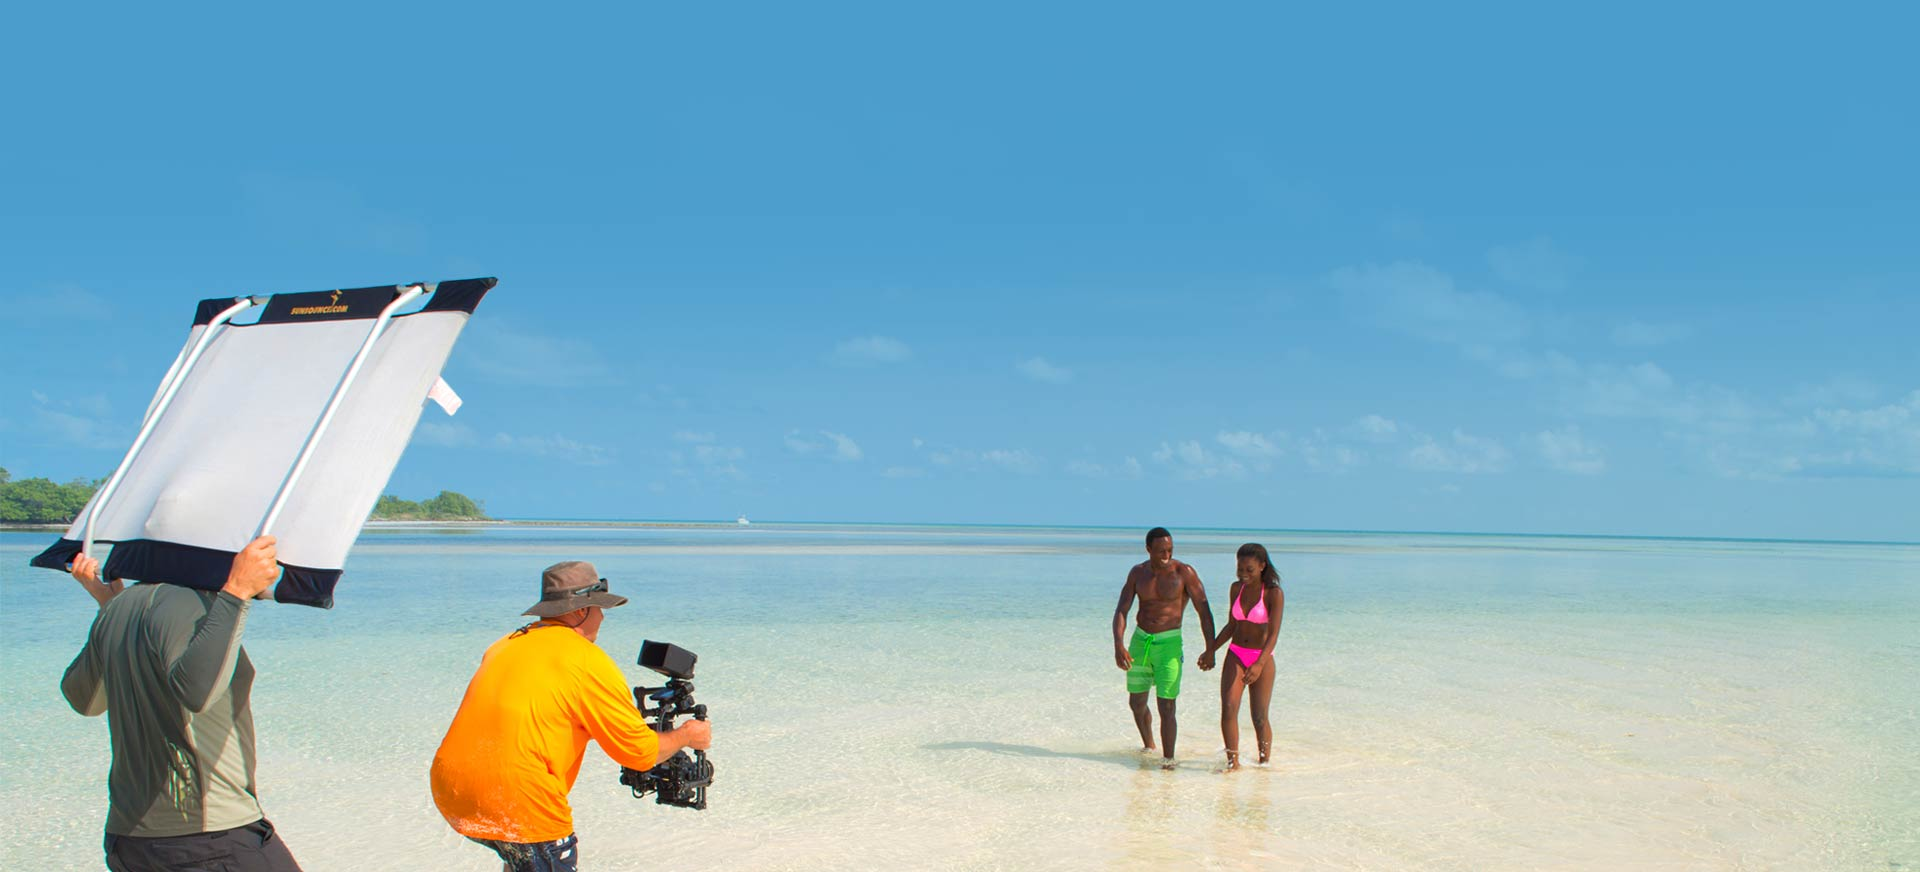 camera man filming two models on a sandbar in key west